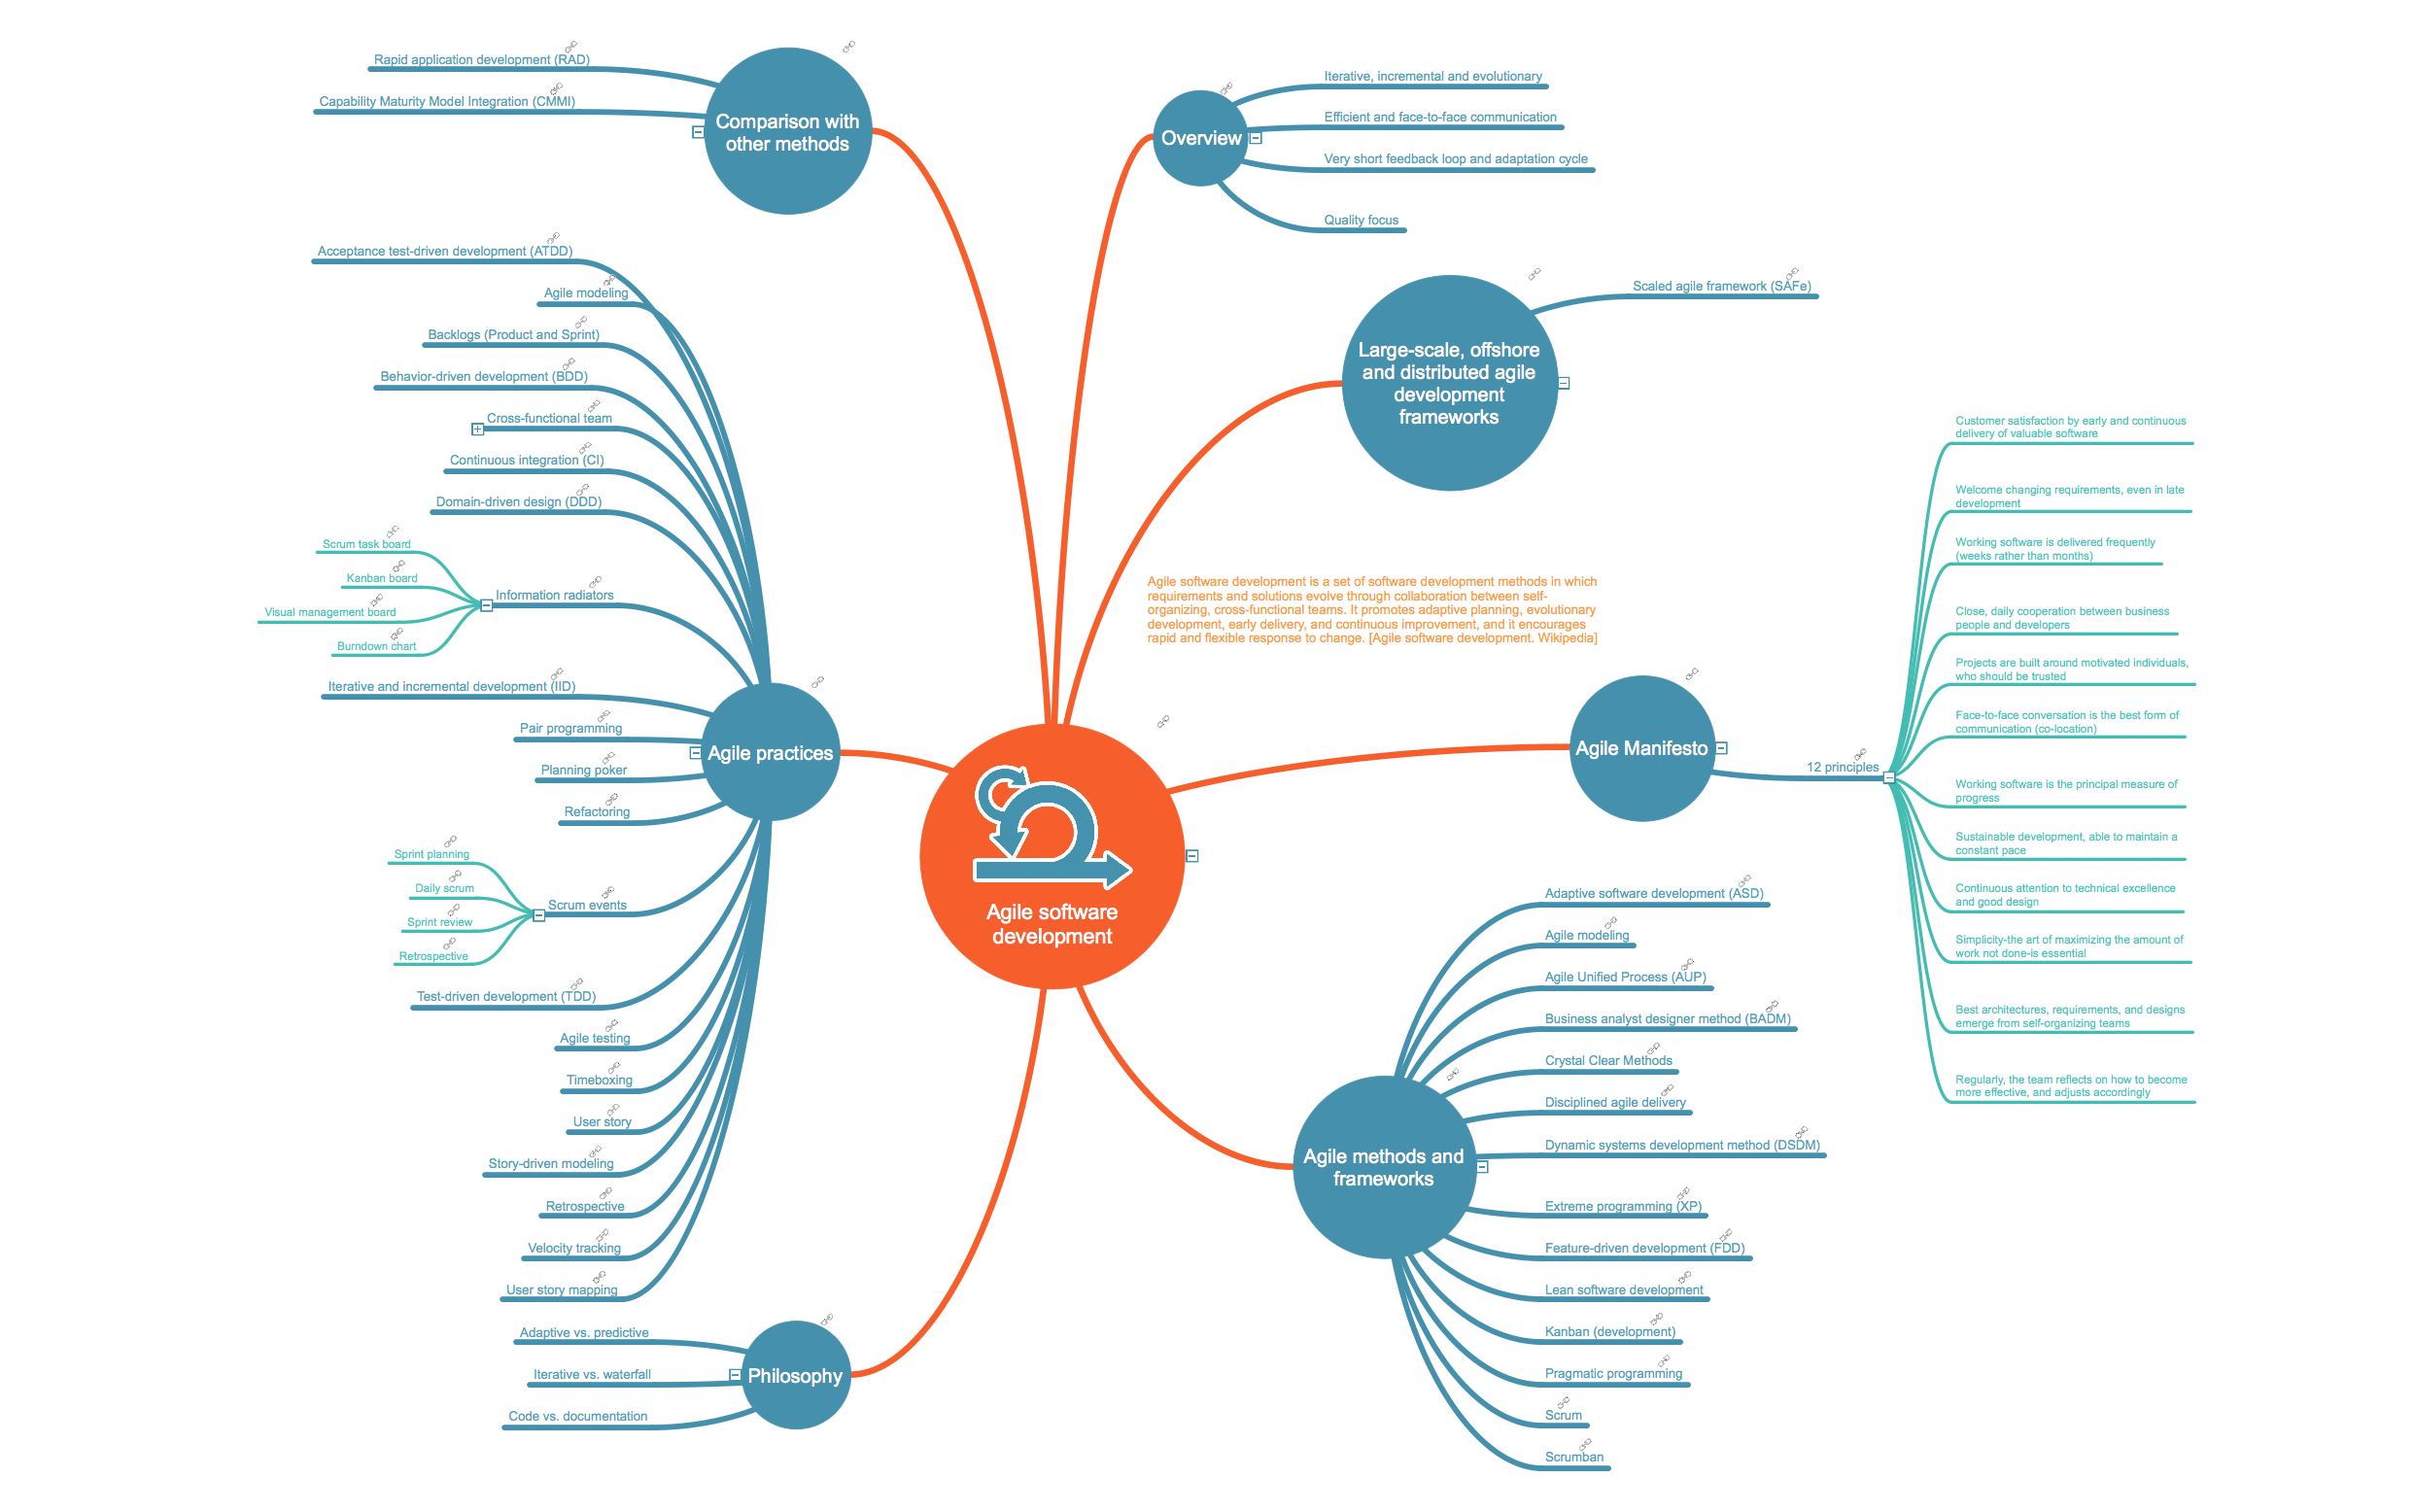 Agile Software Development This Mindmap Was Created In Conceptdraw Is Using Pro Diagramming Enhanced With Scrum Workflow Solution An Experienced User Spent 5 Minutes